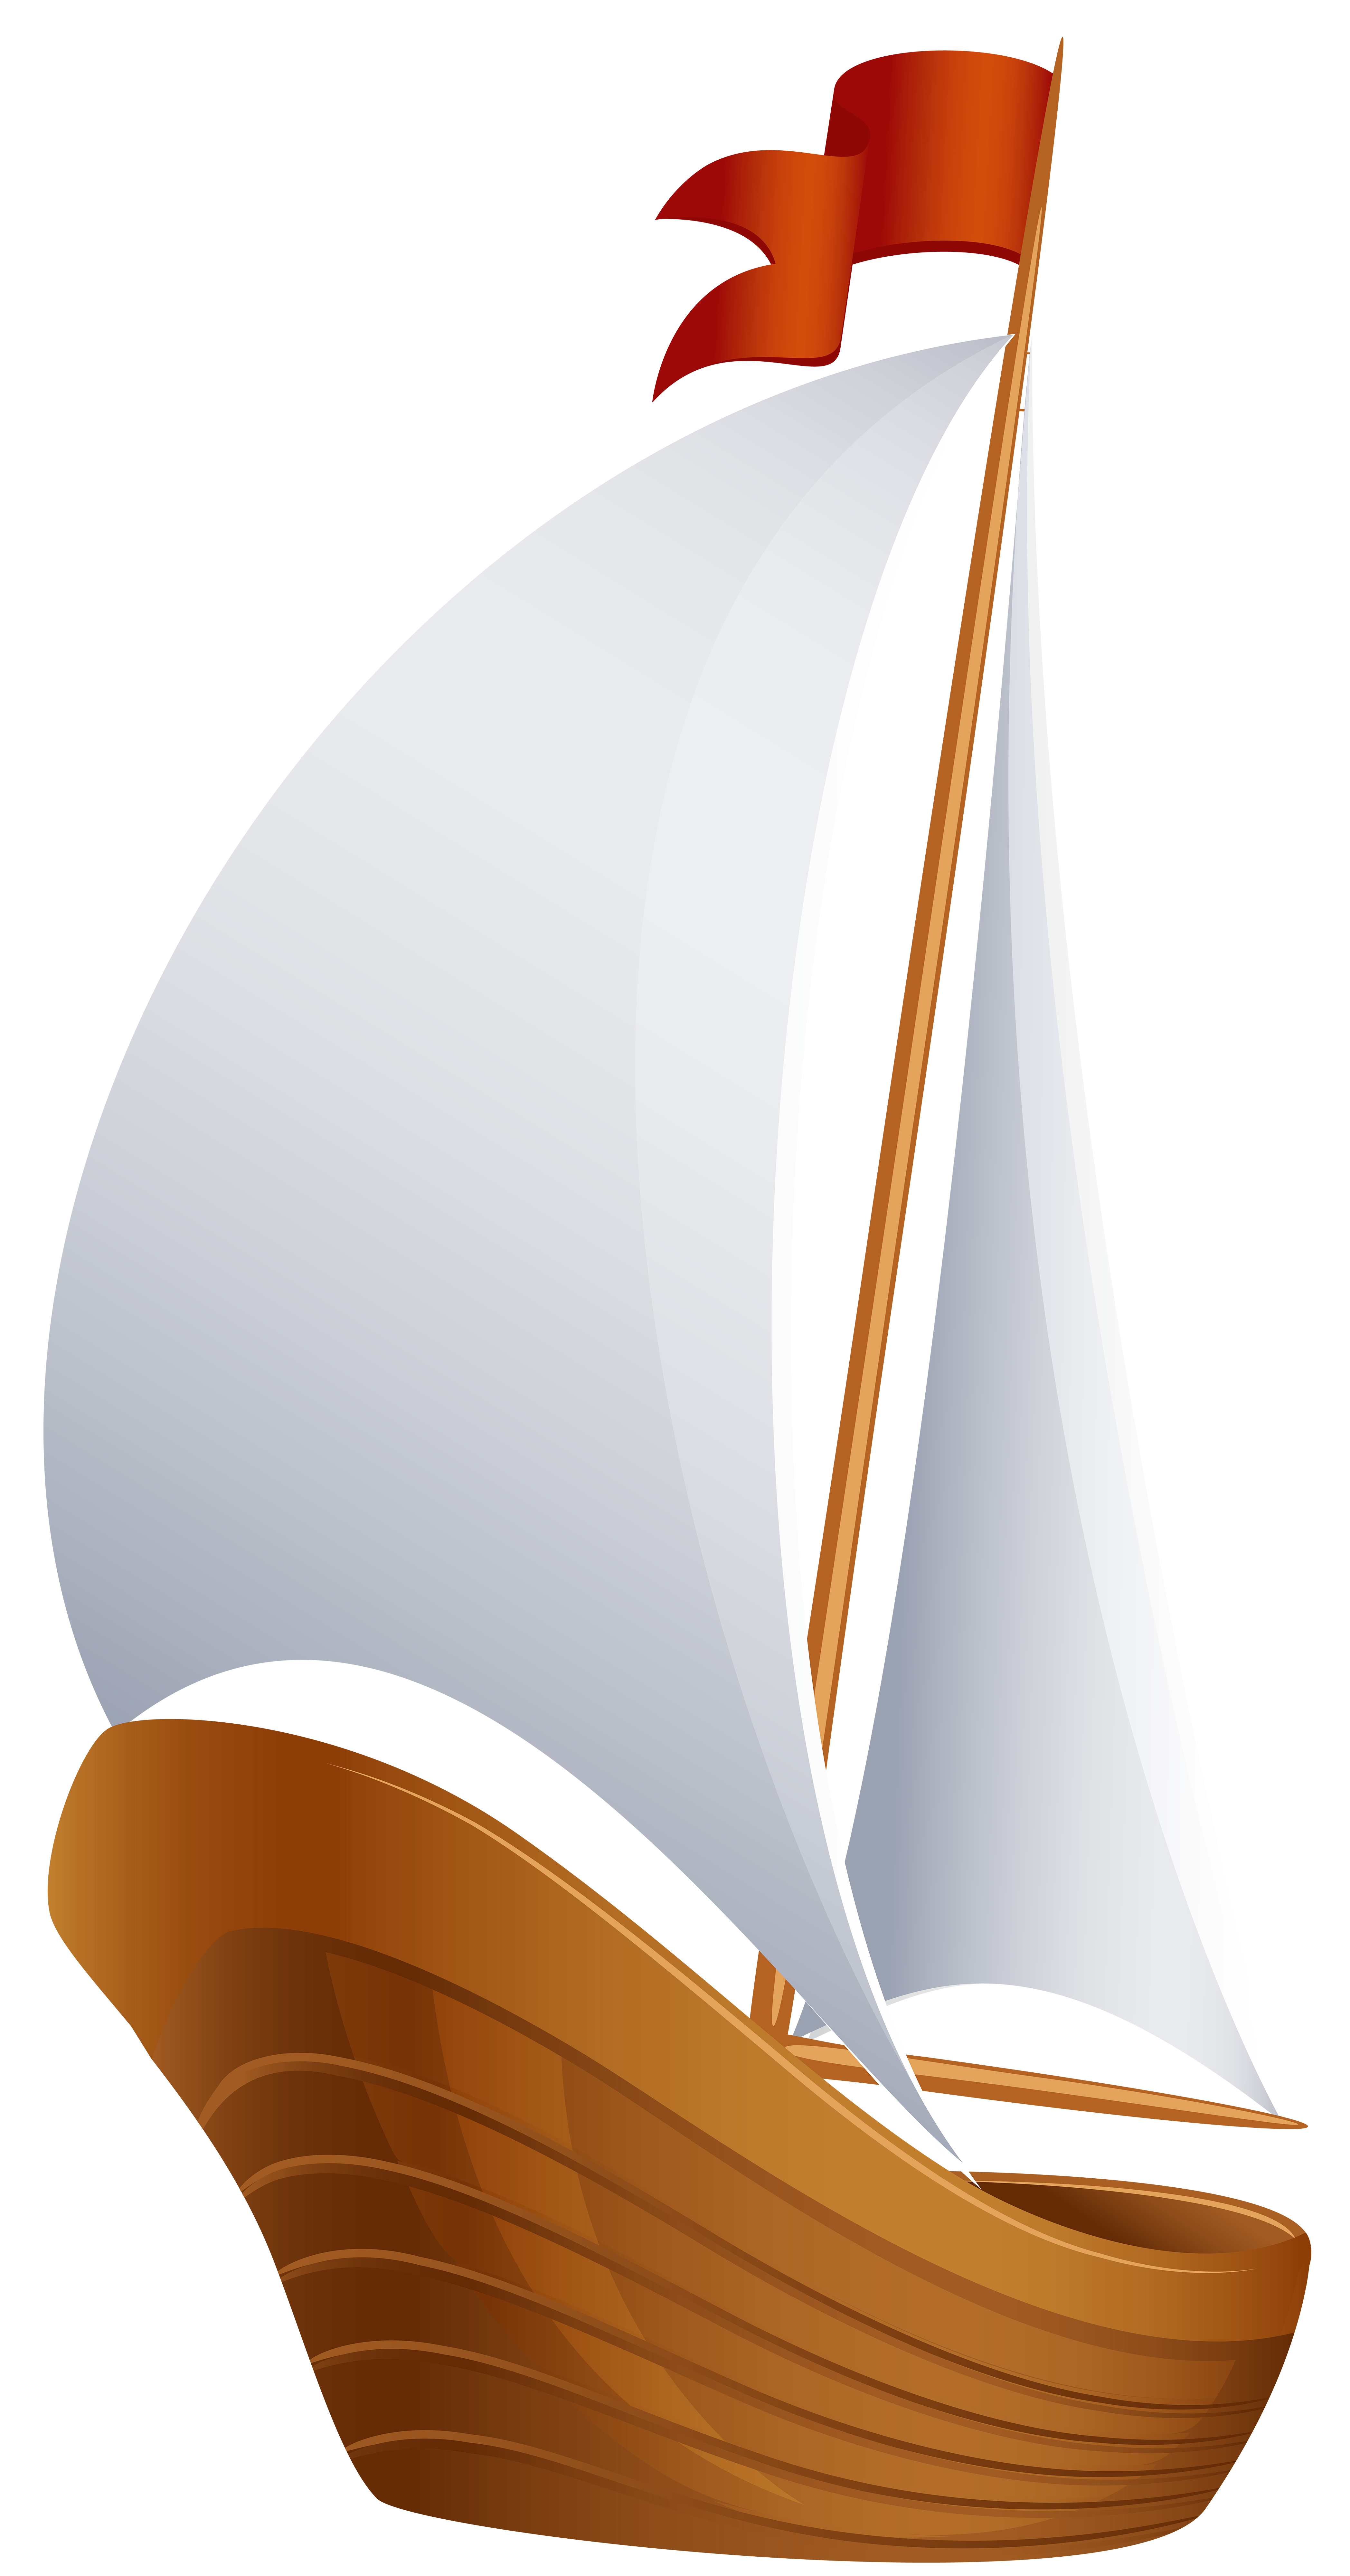 Clip art image gallery. Sailboat png graphic royalty free